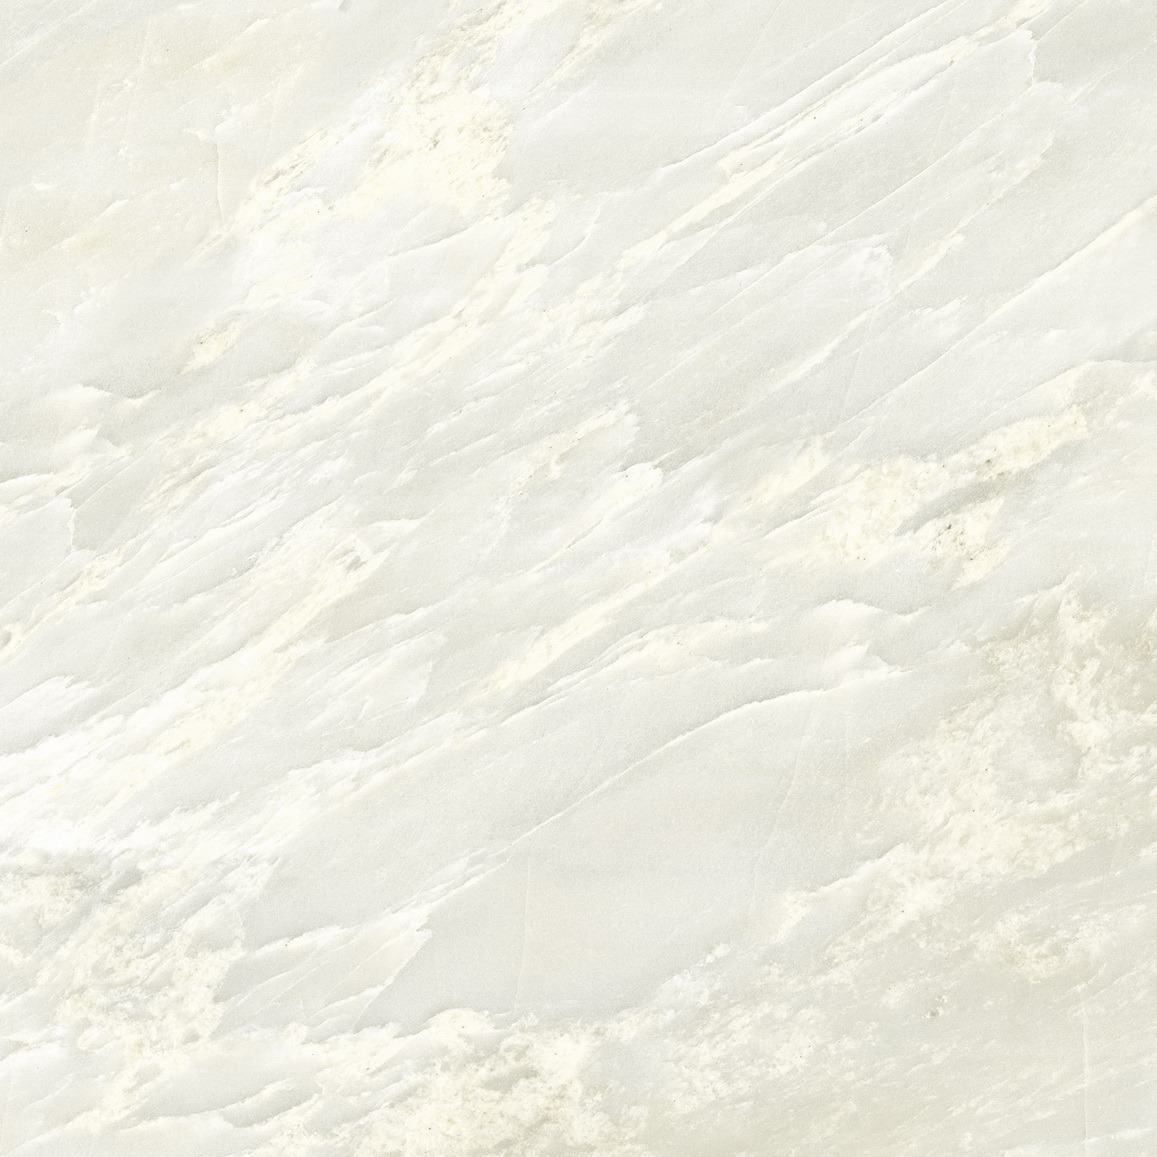 China Africa White Onyx White Marble Tiles White Veins Tile Flooring ...